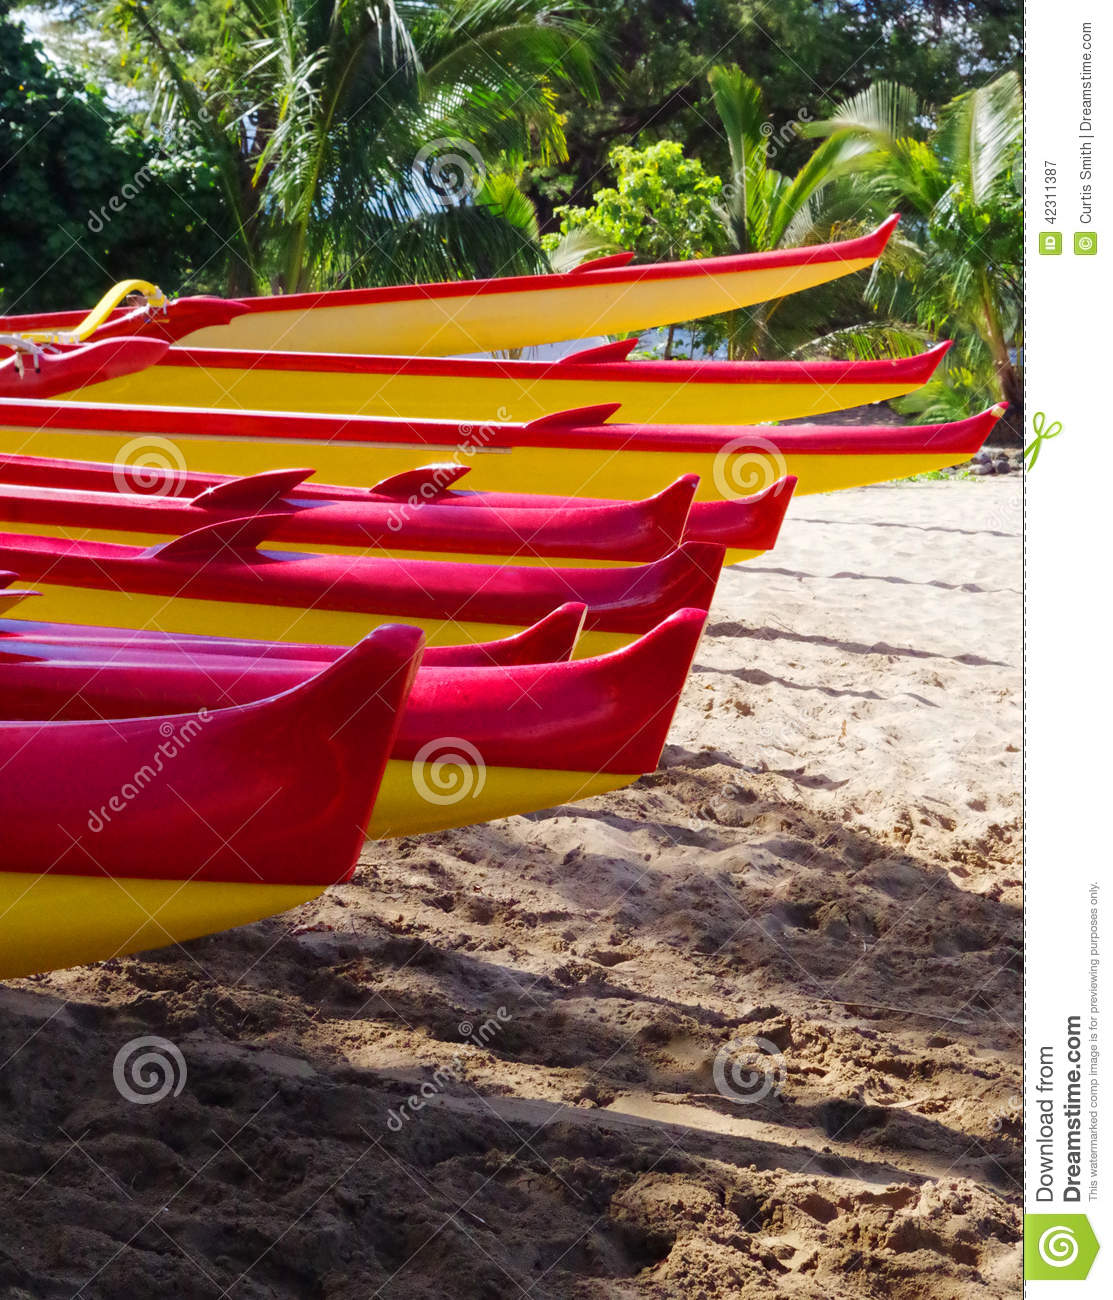 Outrigger canoes on the beach in Maui, Hawaii